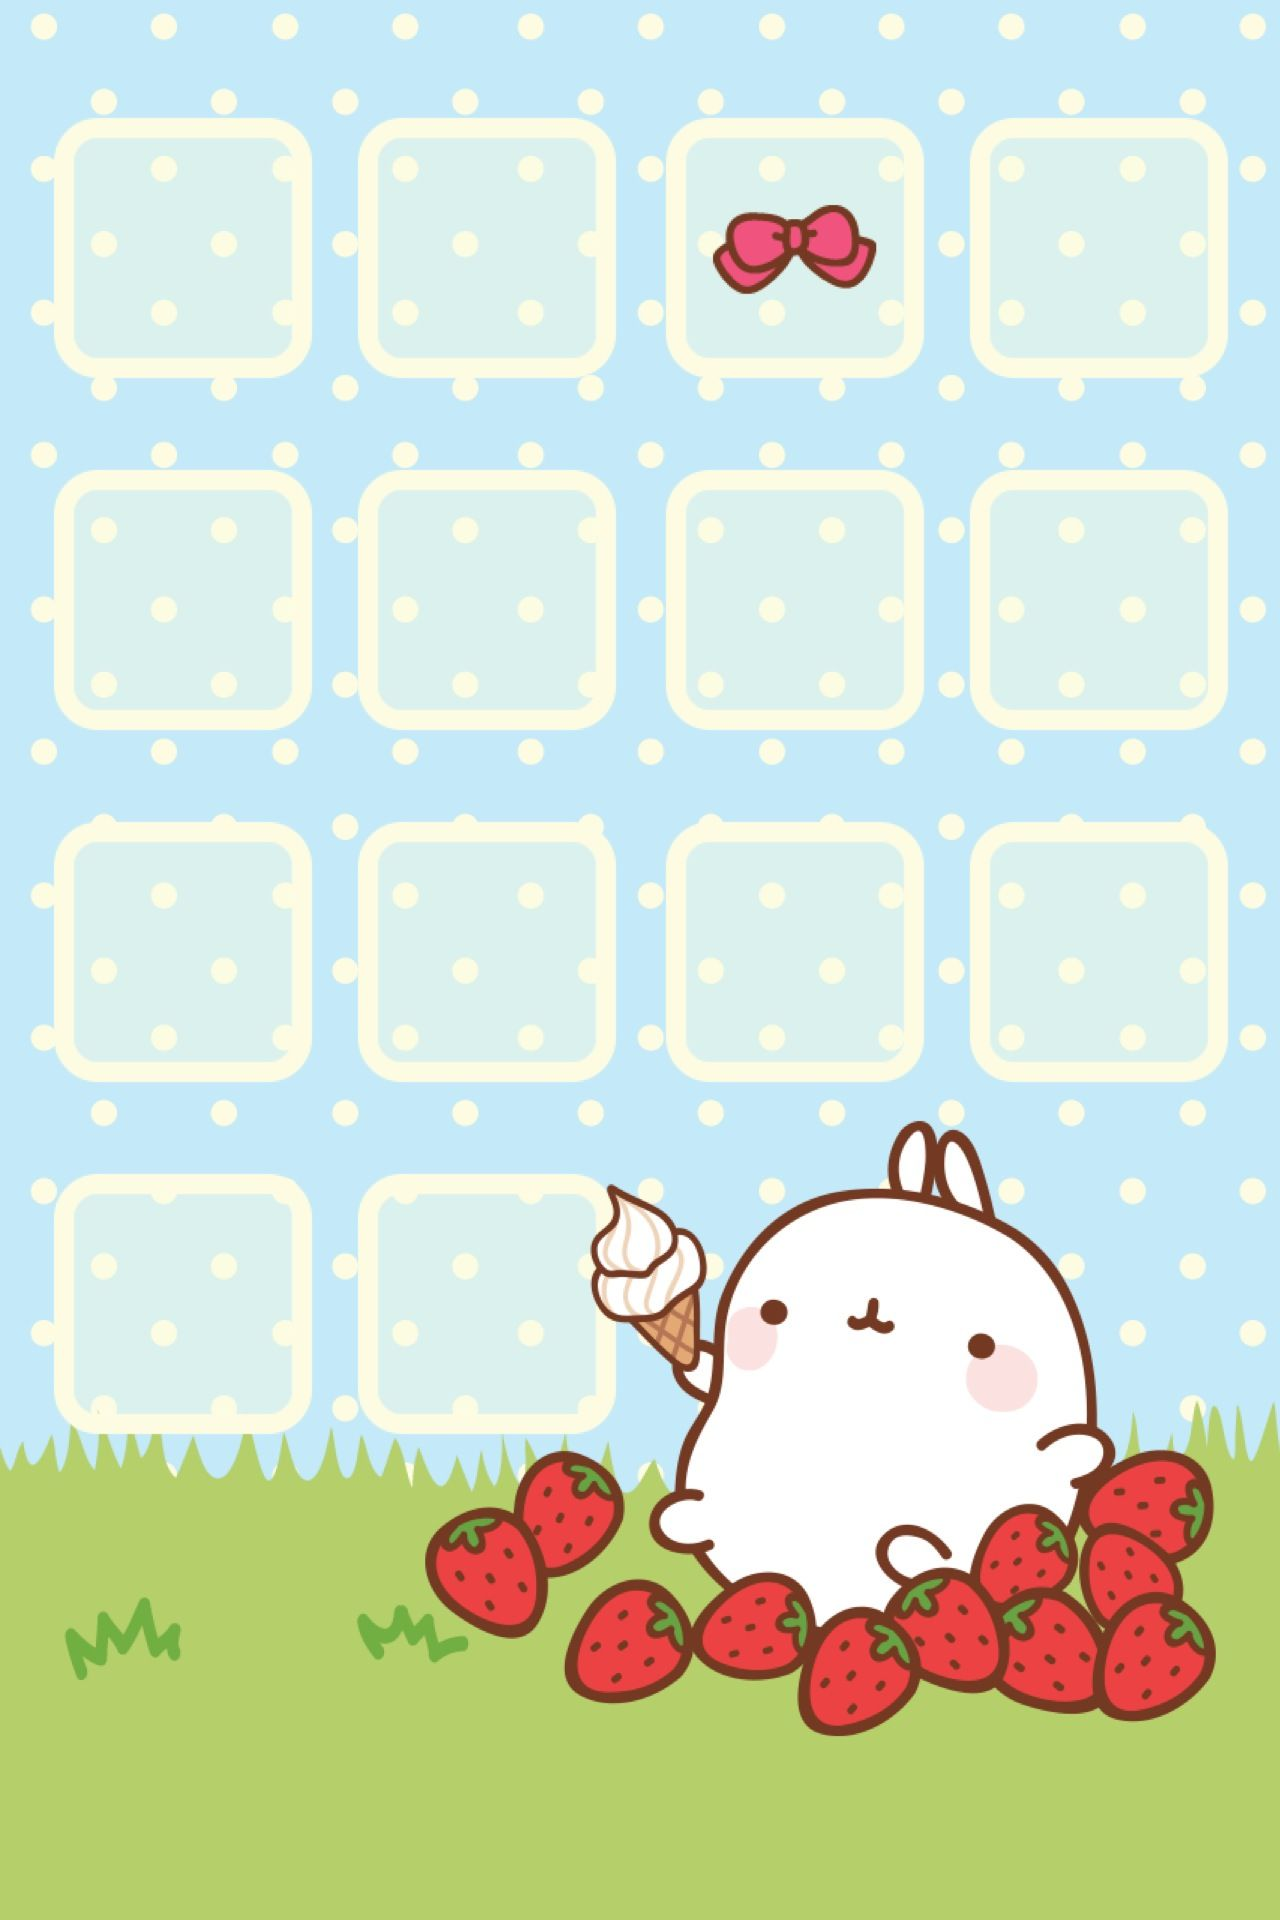 Kawaii Iphone Wallpapers Top Free Kawaii Iphone